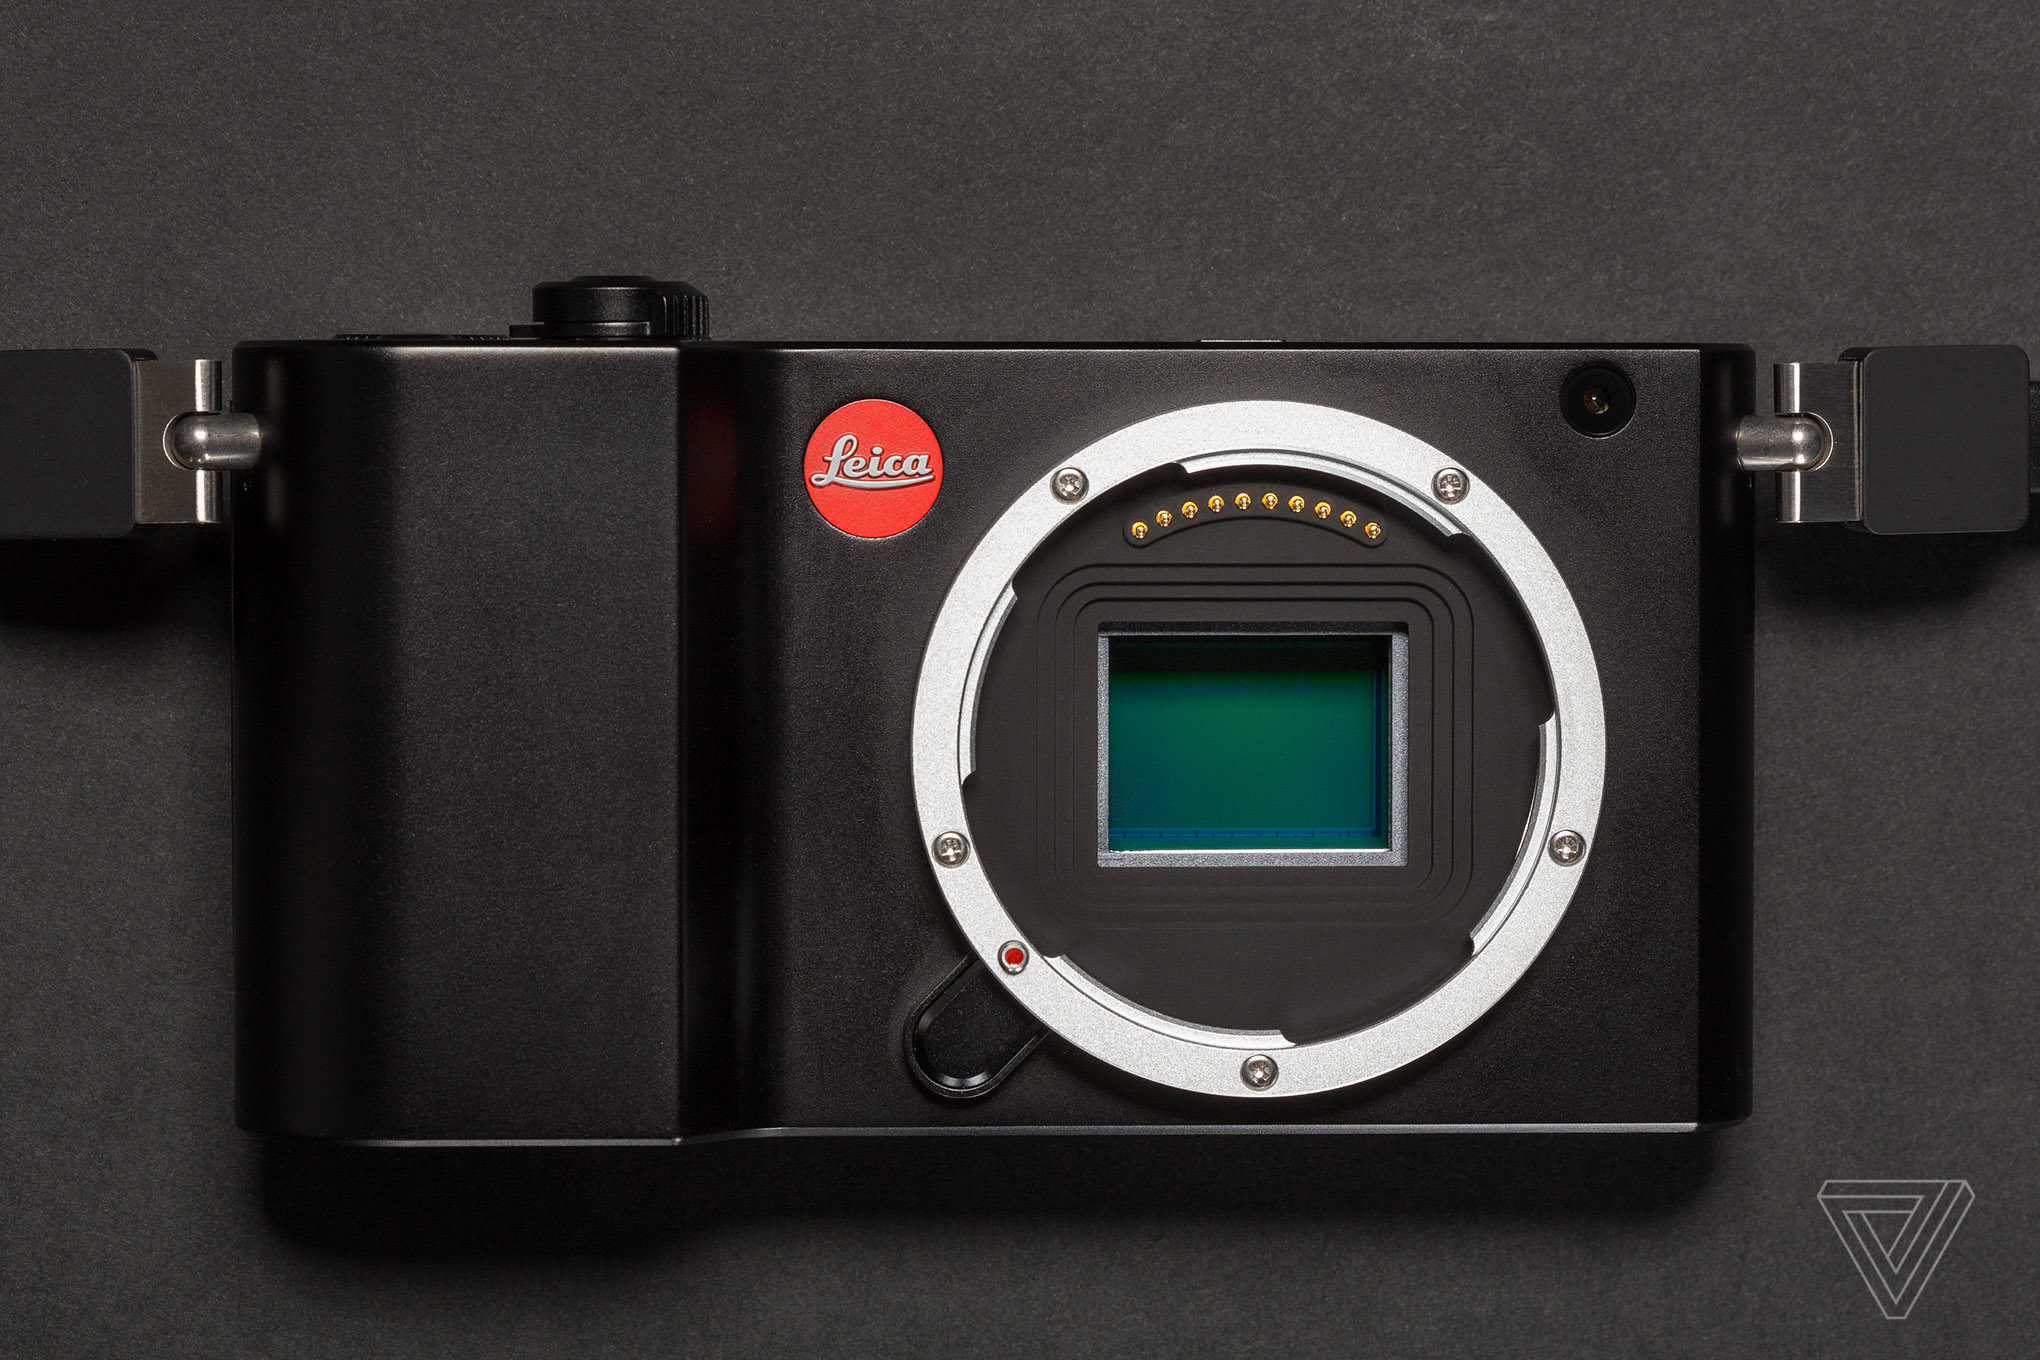 Leica TL2 Mirrorless Camera Launched With 24-Megapixel Sensor, 4K Video Recording